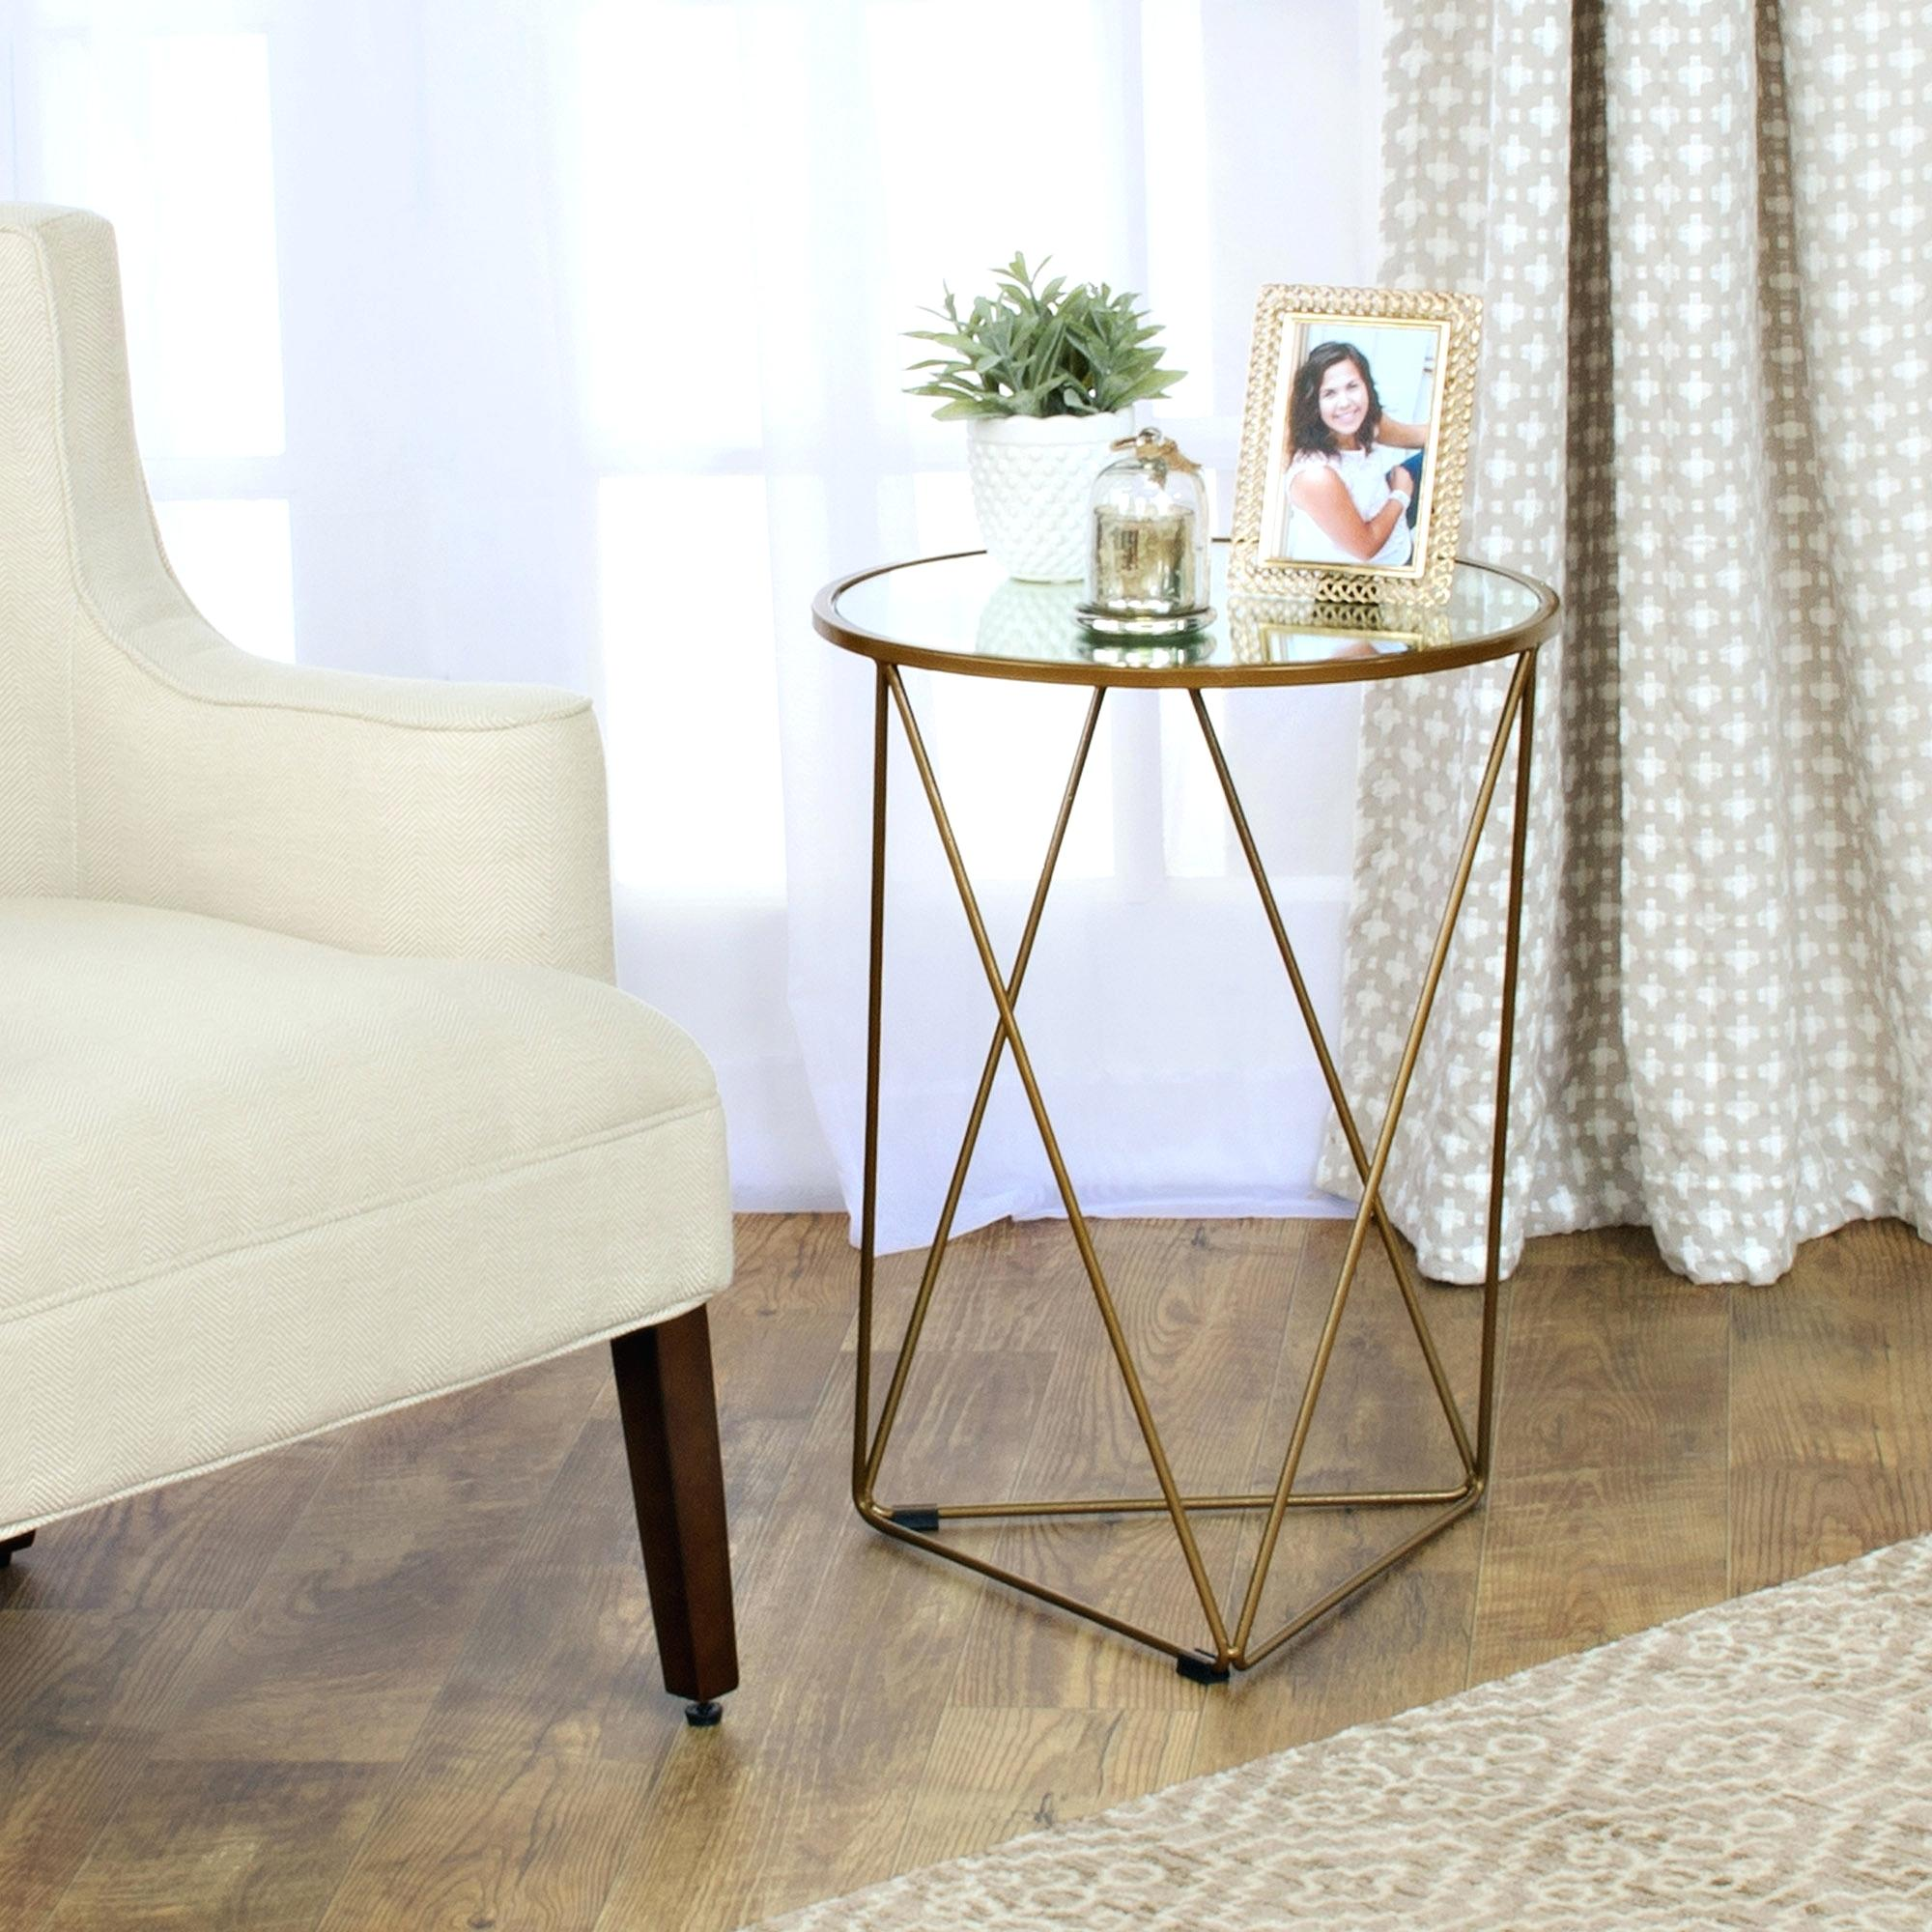 small round accent tables target white for living room asnishing corner table with drawer glass and metal essentials end console ikea silver coffee mirror pier one mirrored west